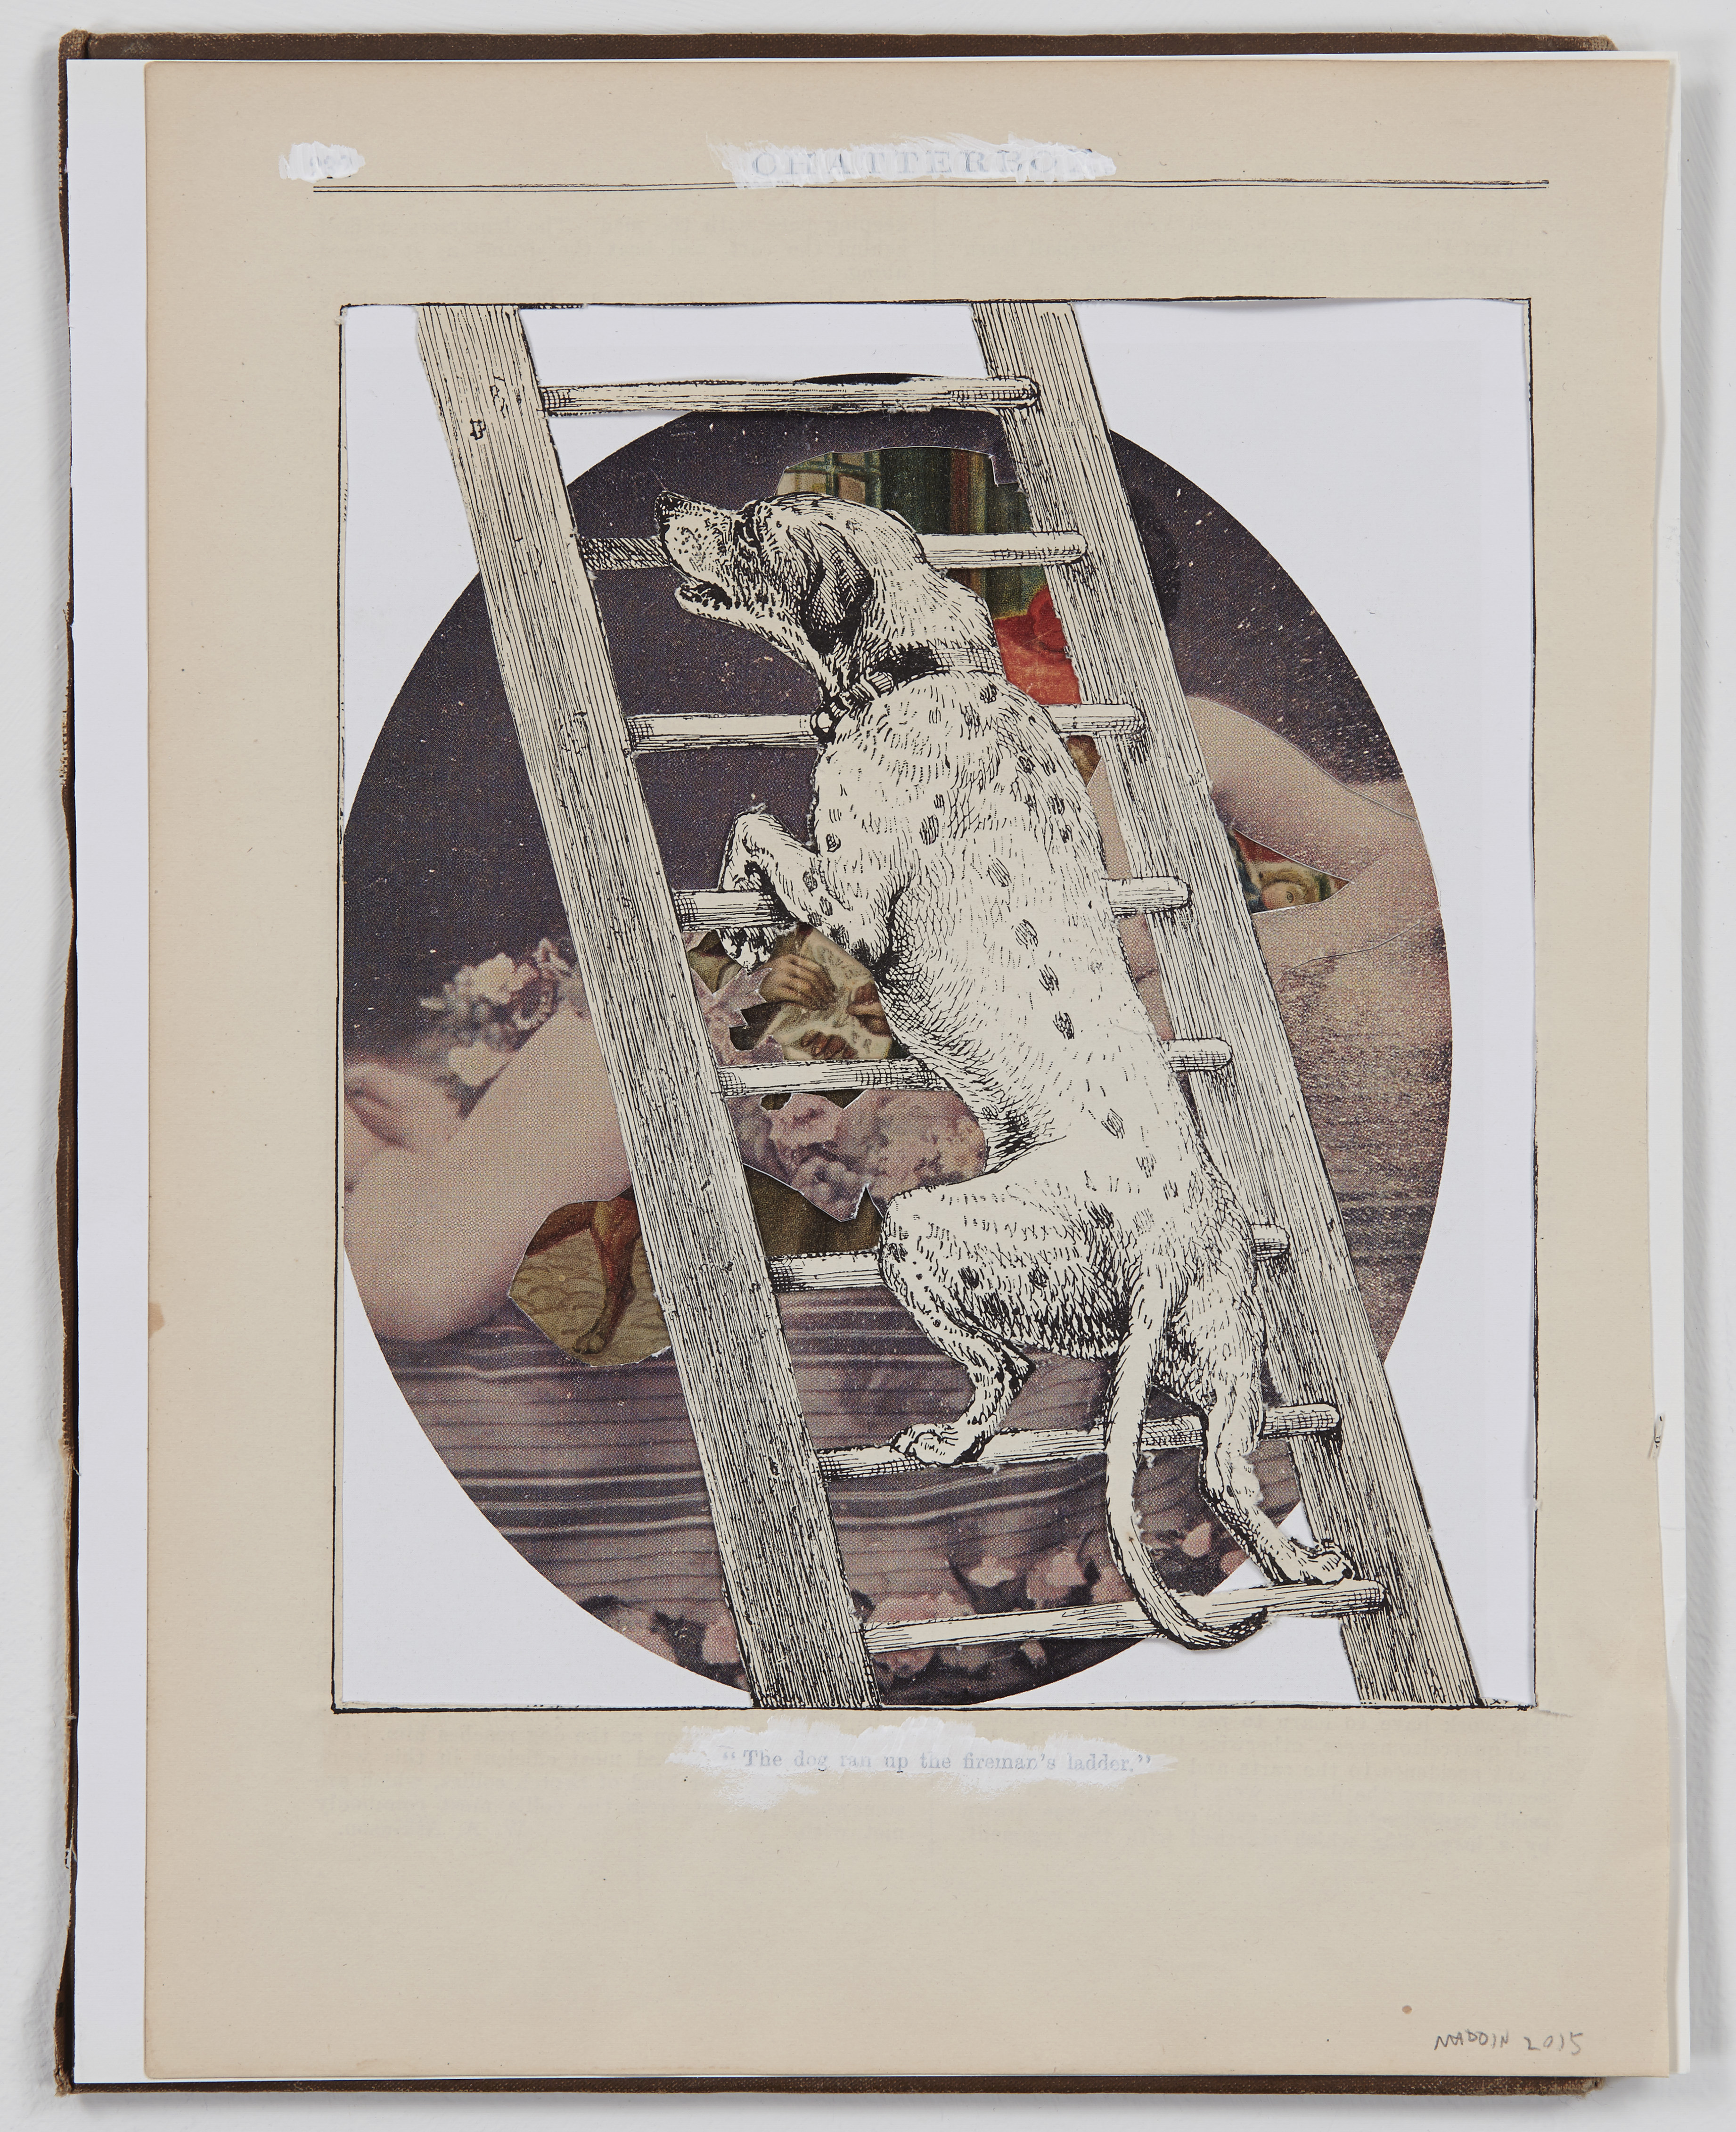 Maddin_Untitled (#07)_2015_collage  and whiteout on bookcover_9.875x7.75in_300dpi